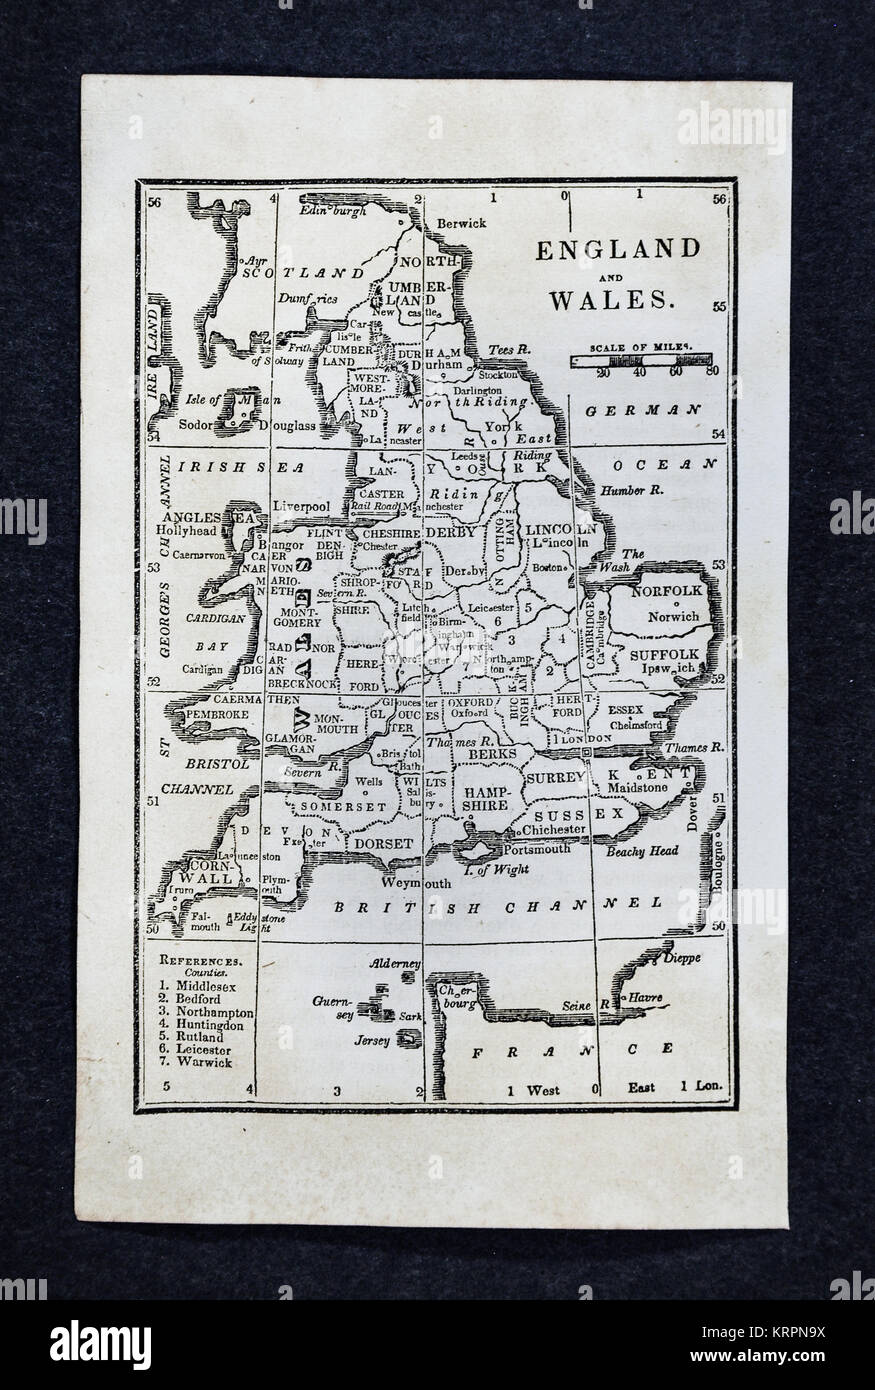 1830 Nathan Hale Map - England & Wales - Great Britain - United Kingdom UK - London Liverpool Manchester Cornwall - Stock Image